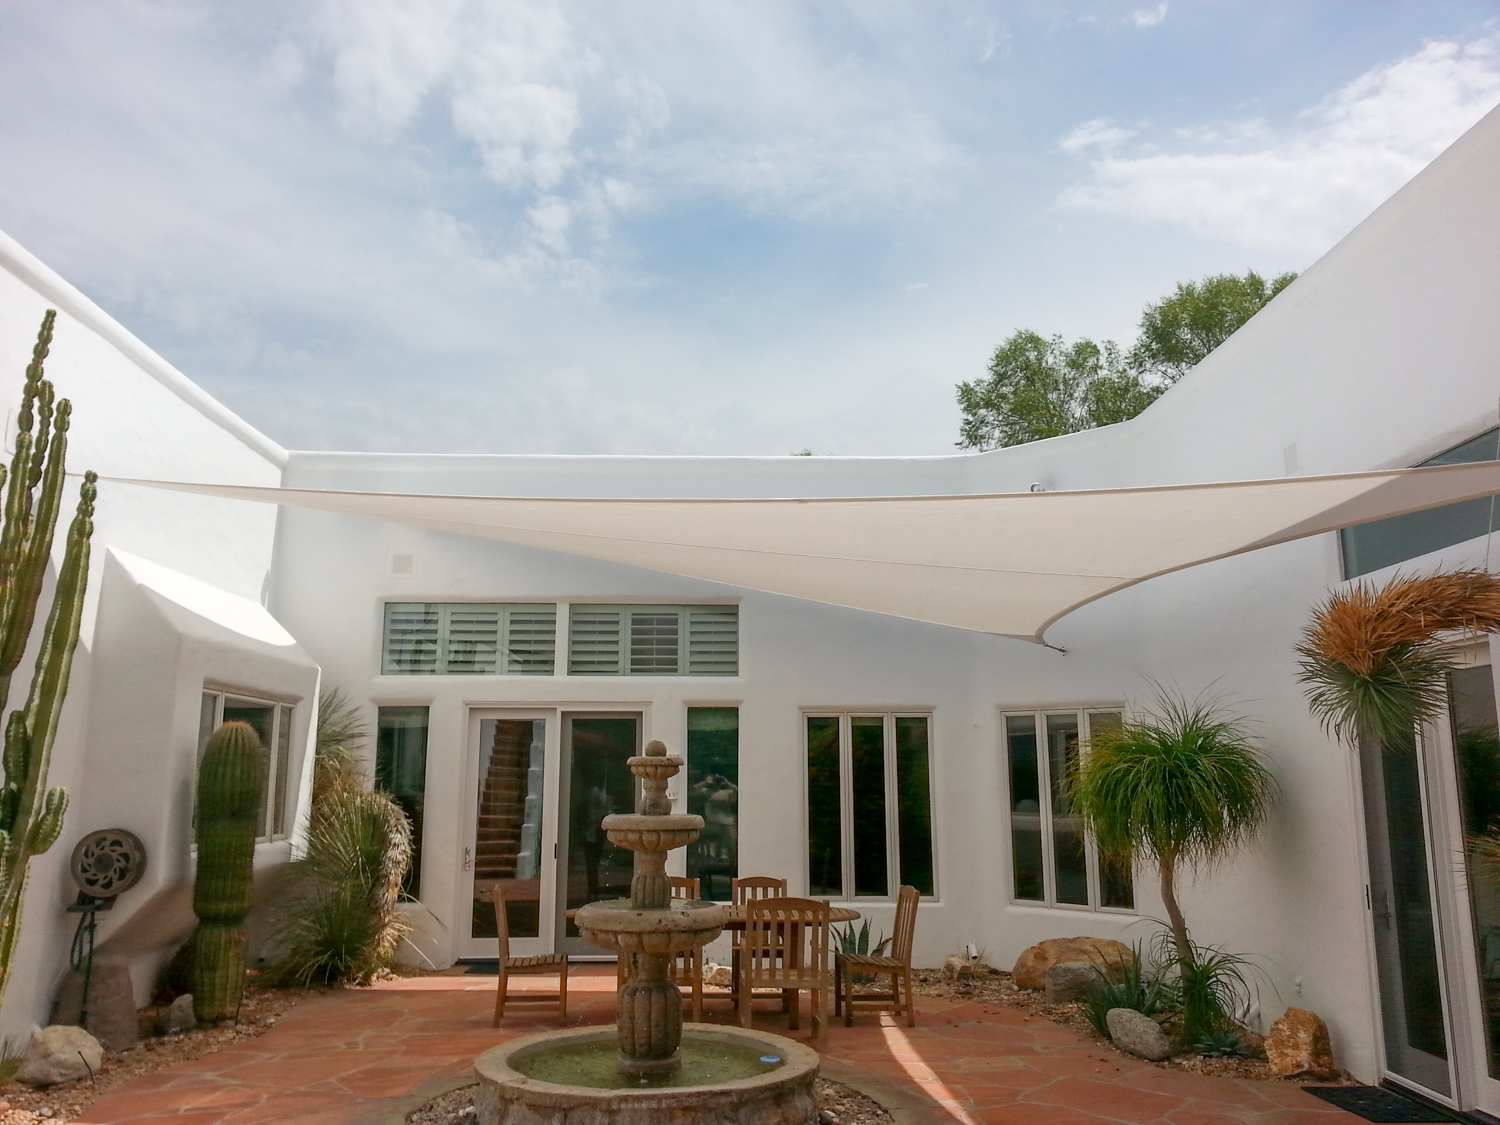 Courtyard Shade Sail, Indian Wells, CA 92210